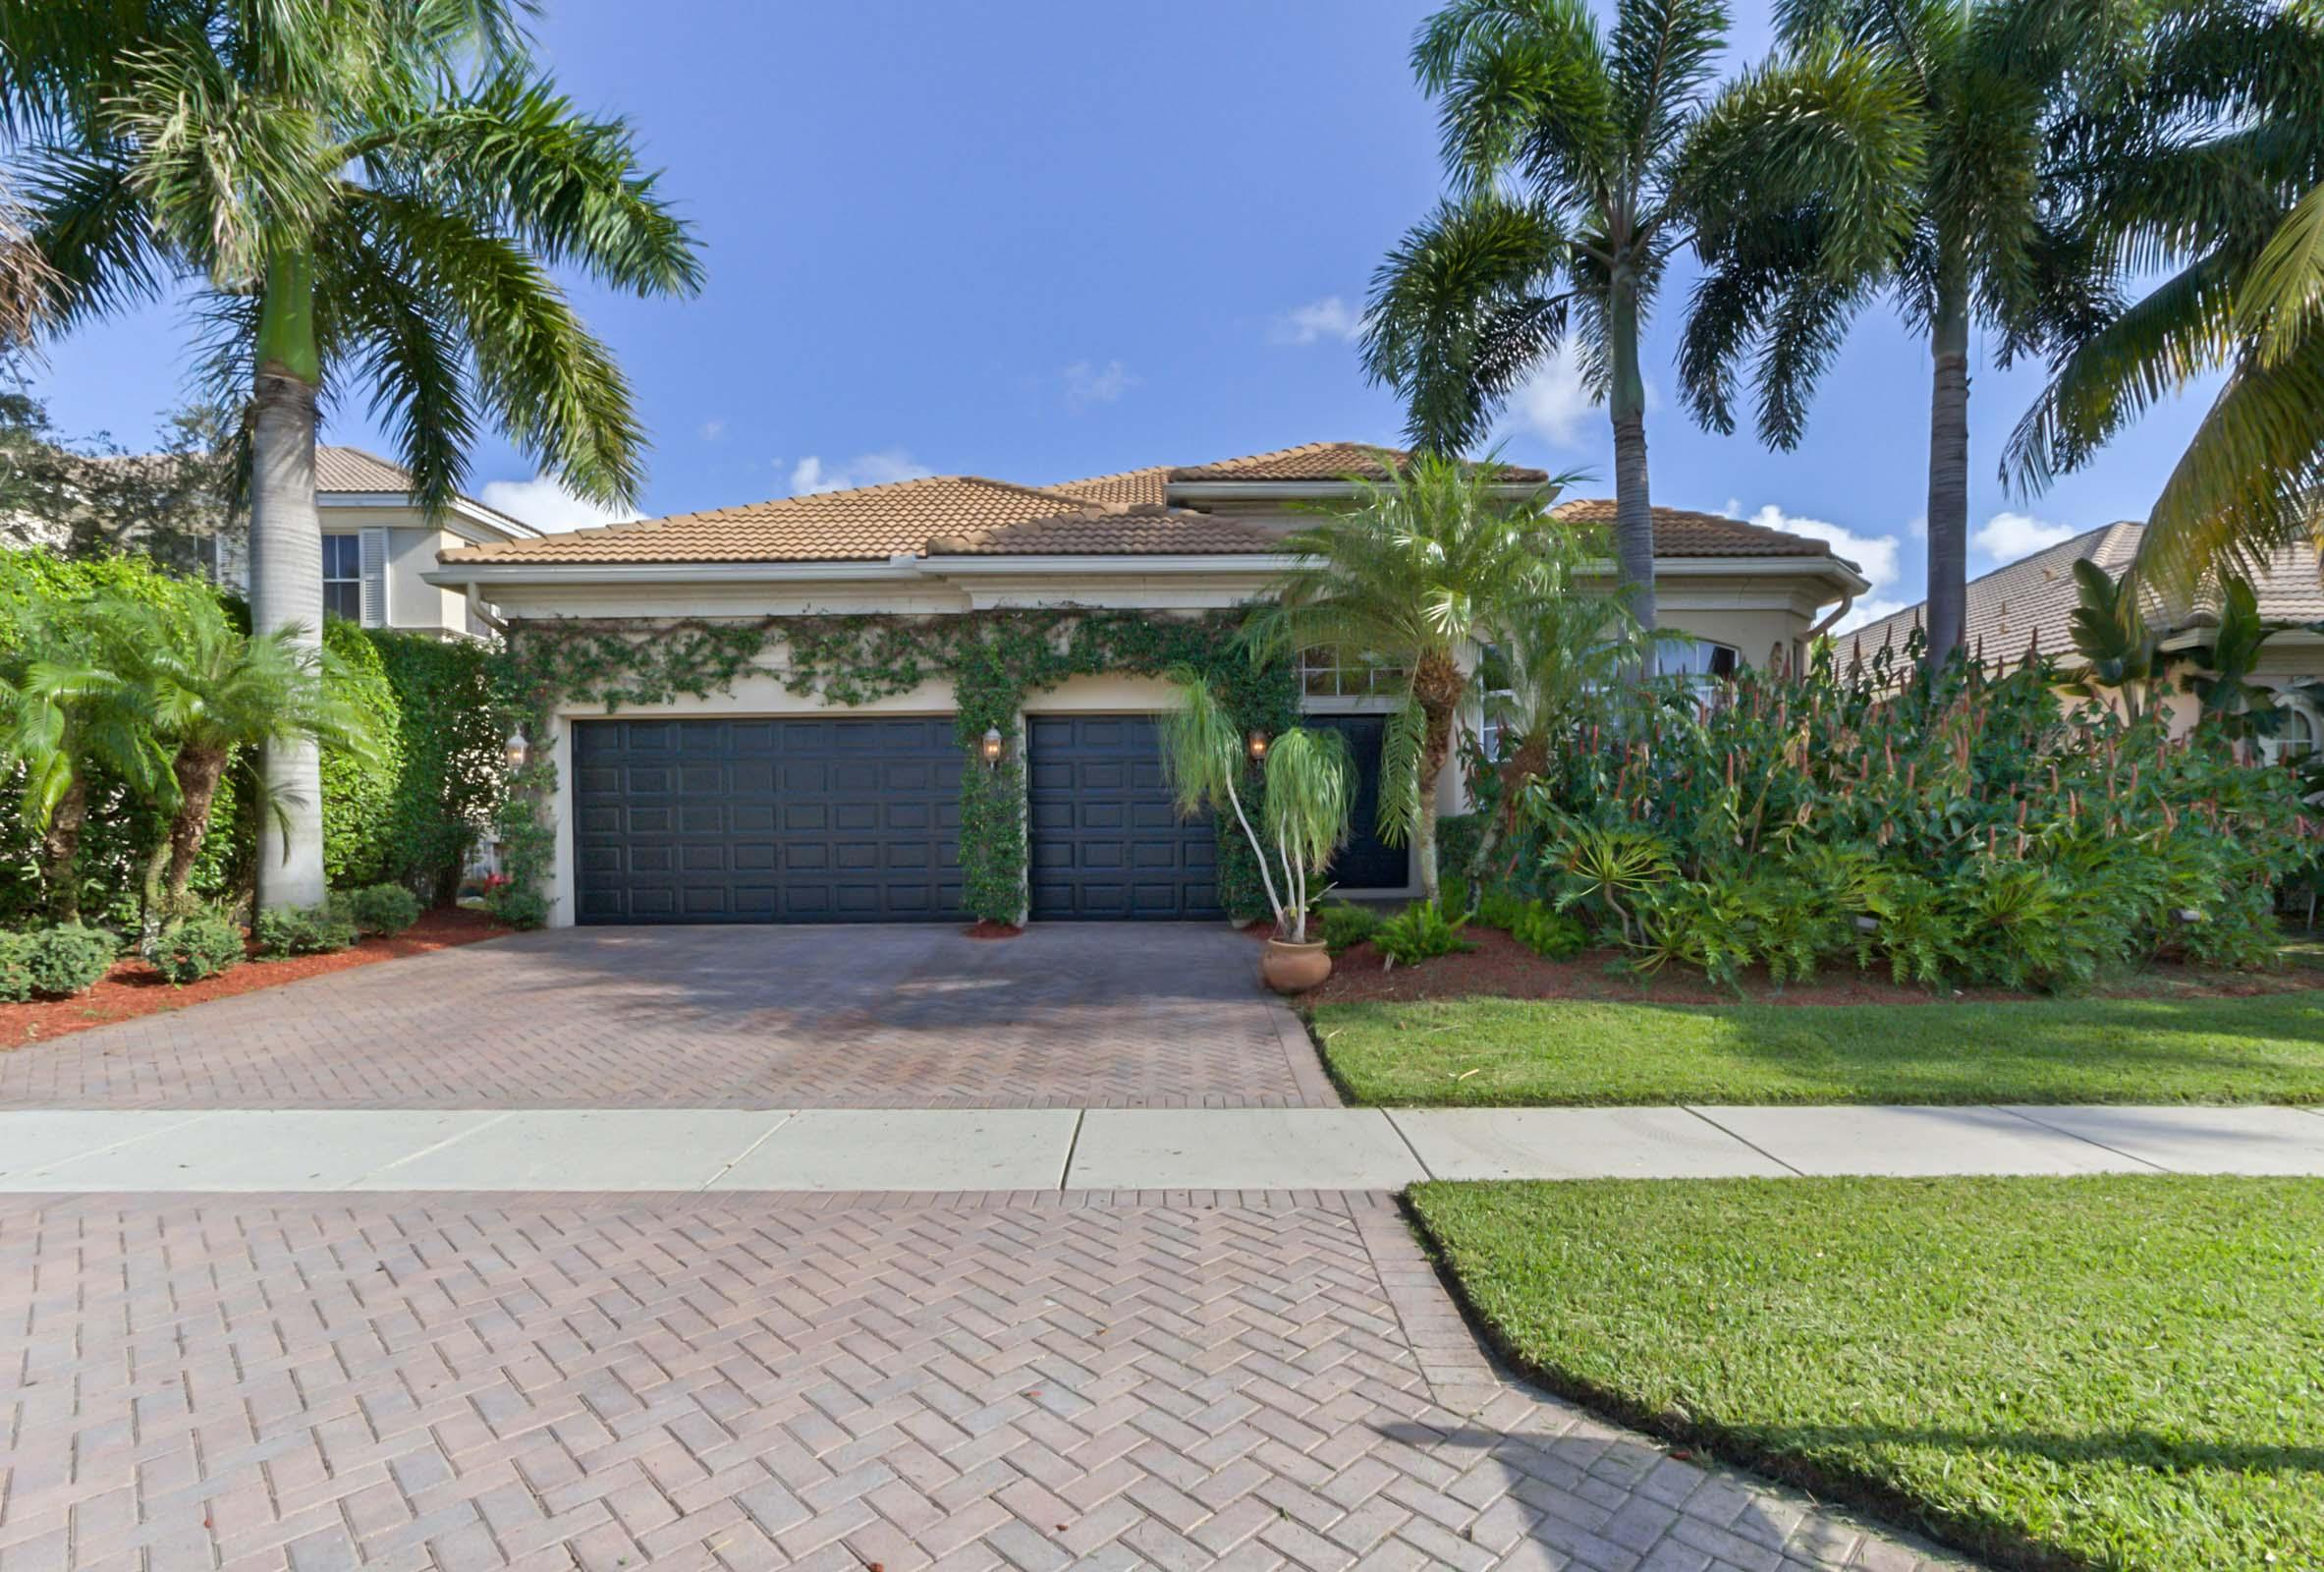 9875 Palma Vista Way Boca Raton, FL 33428